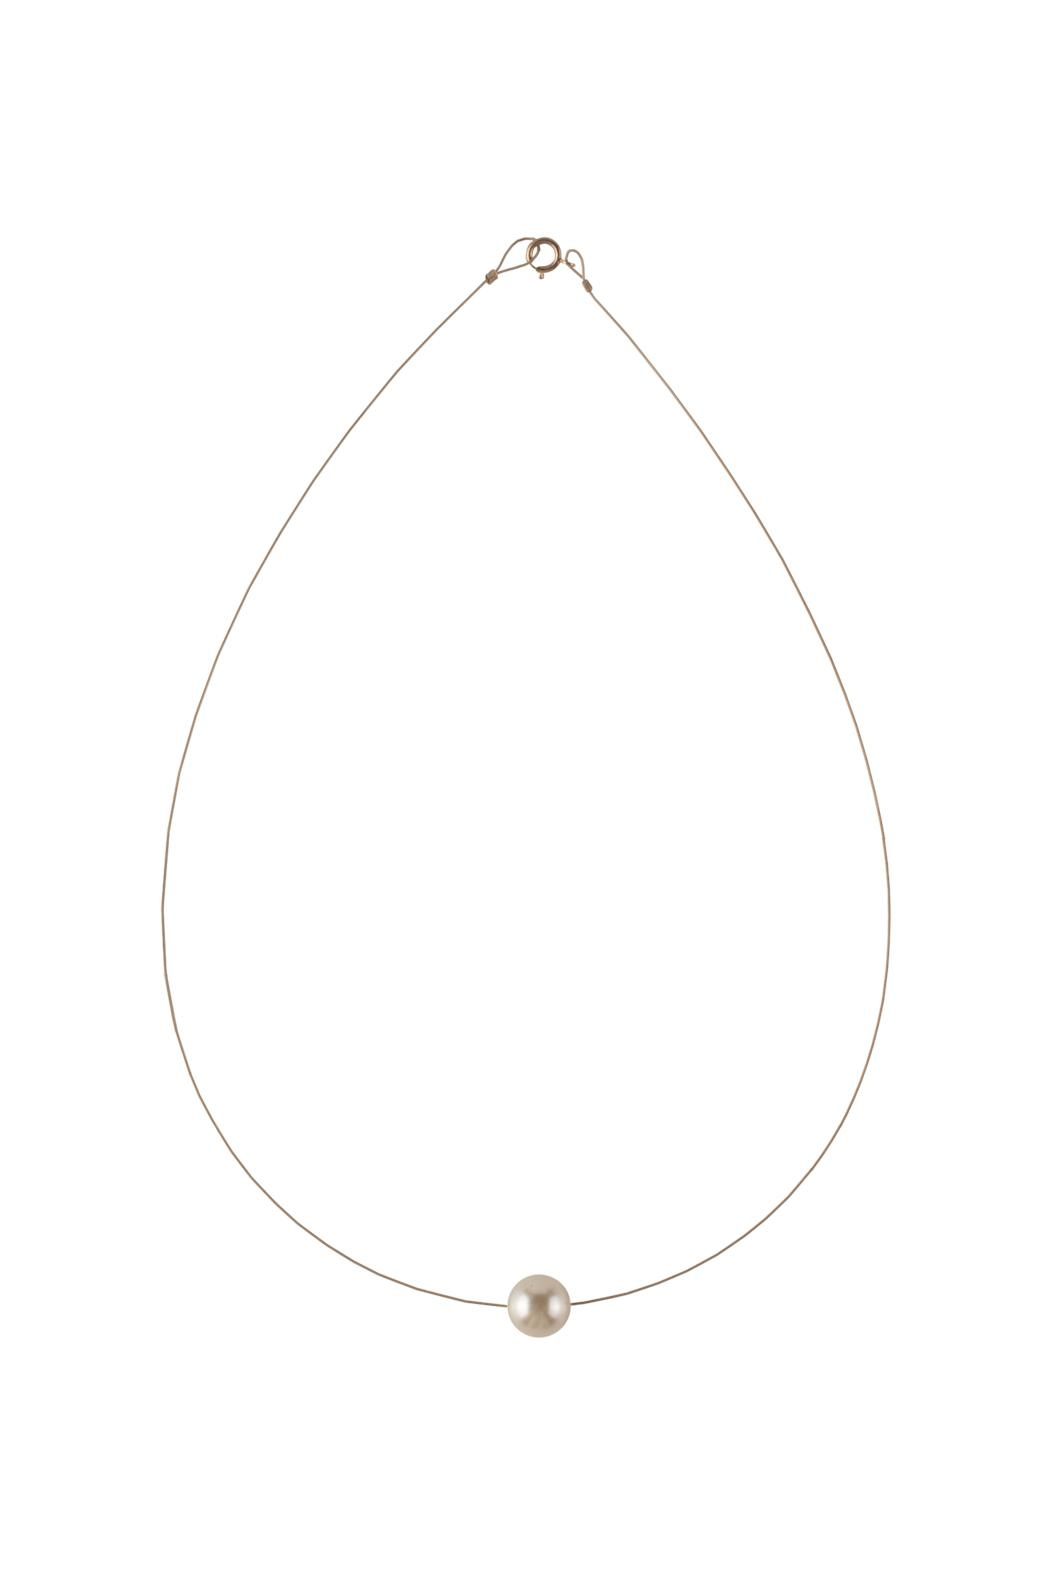 Sayulita Sol Jewelry Swarovski Cream Pearl Necklace - Main Image